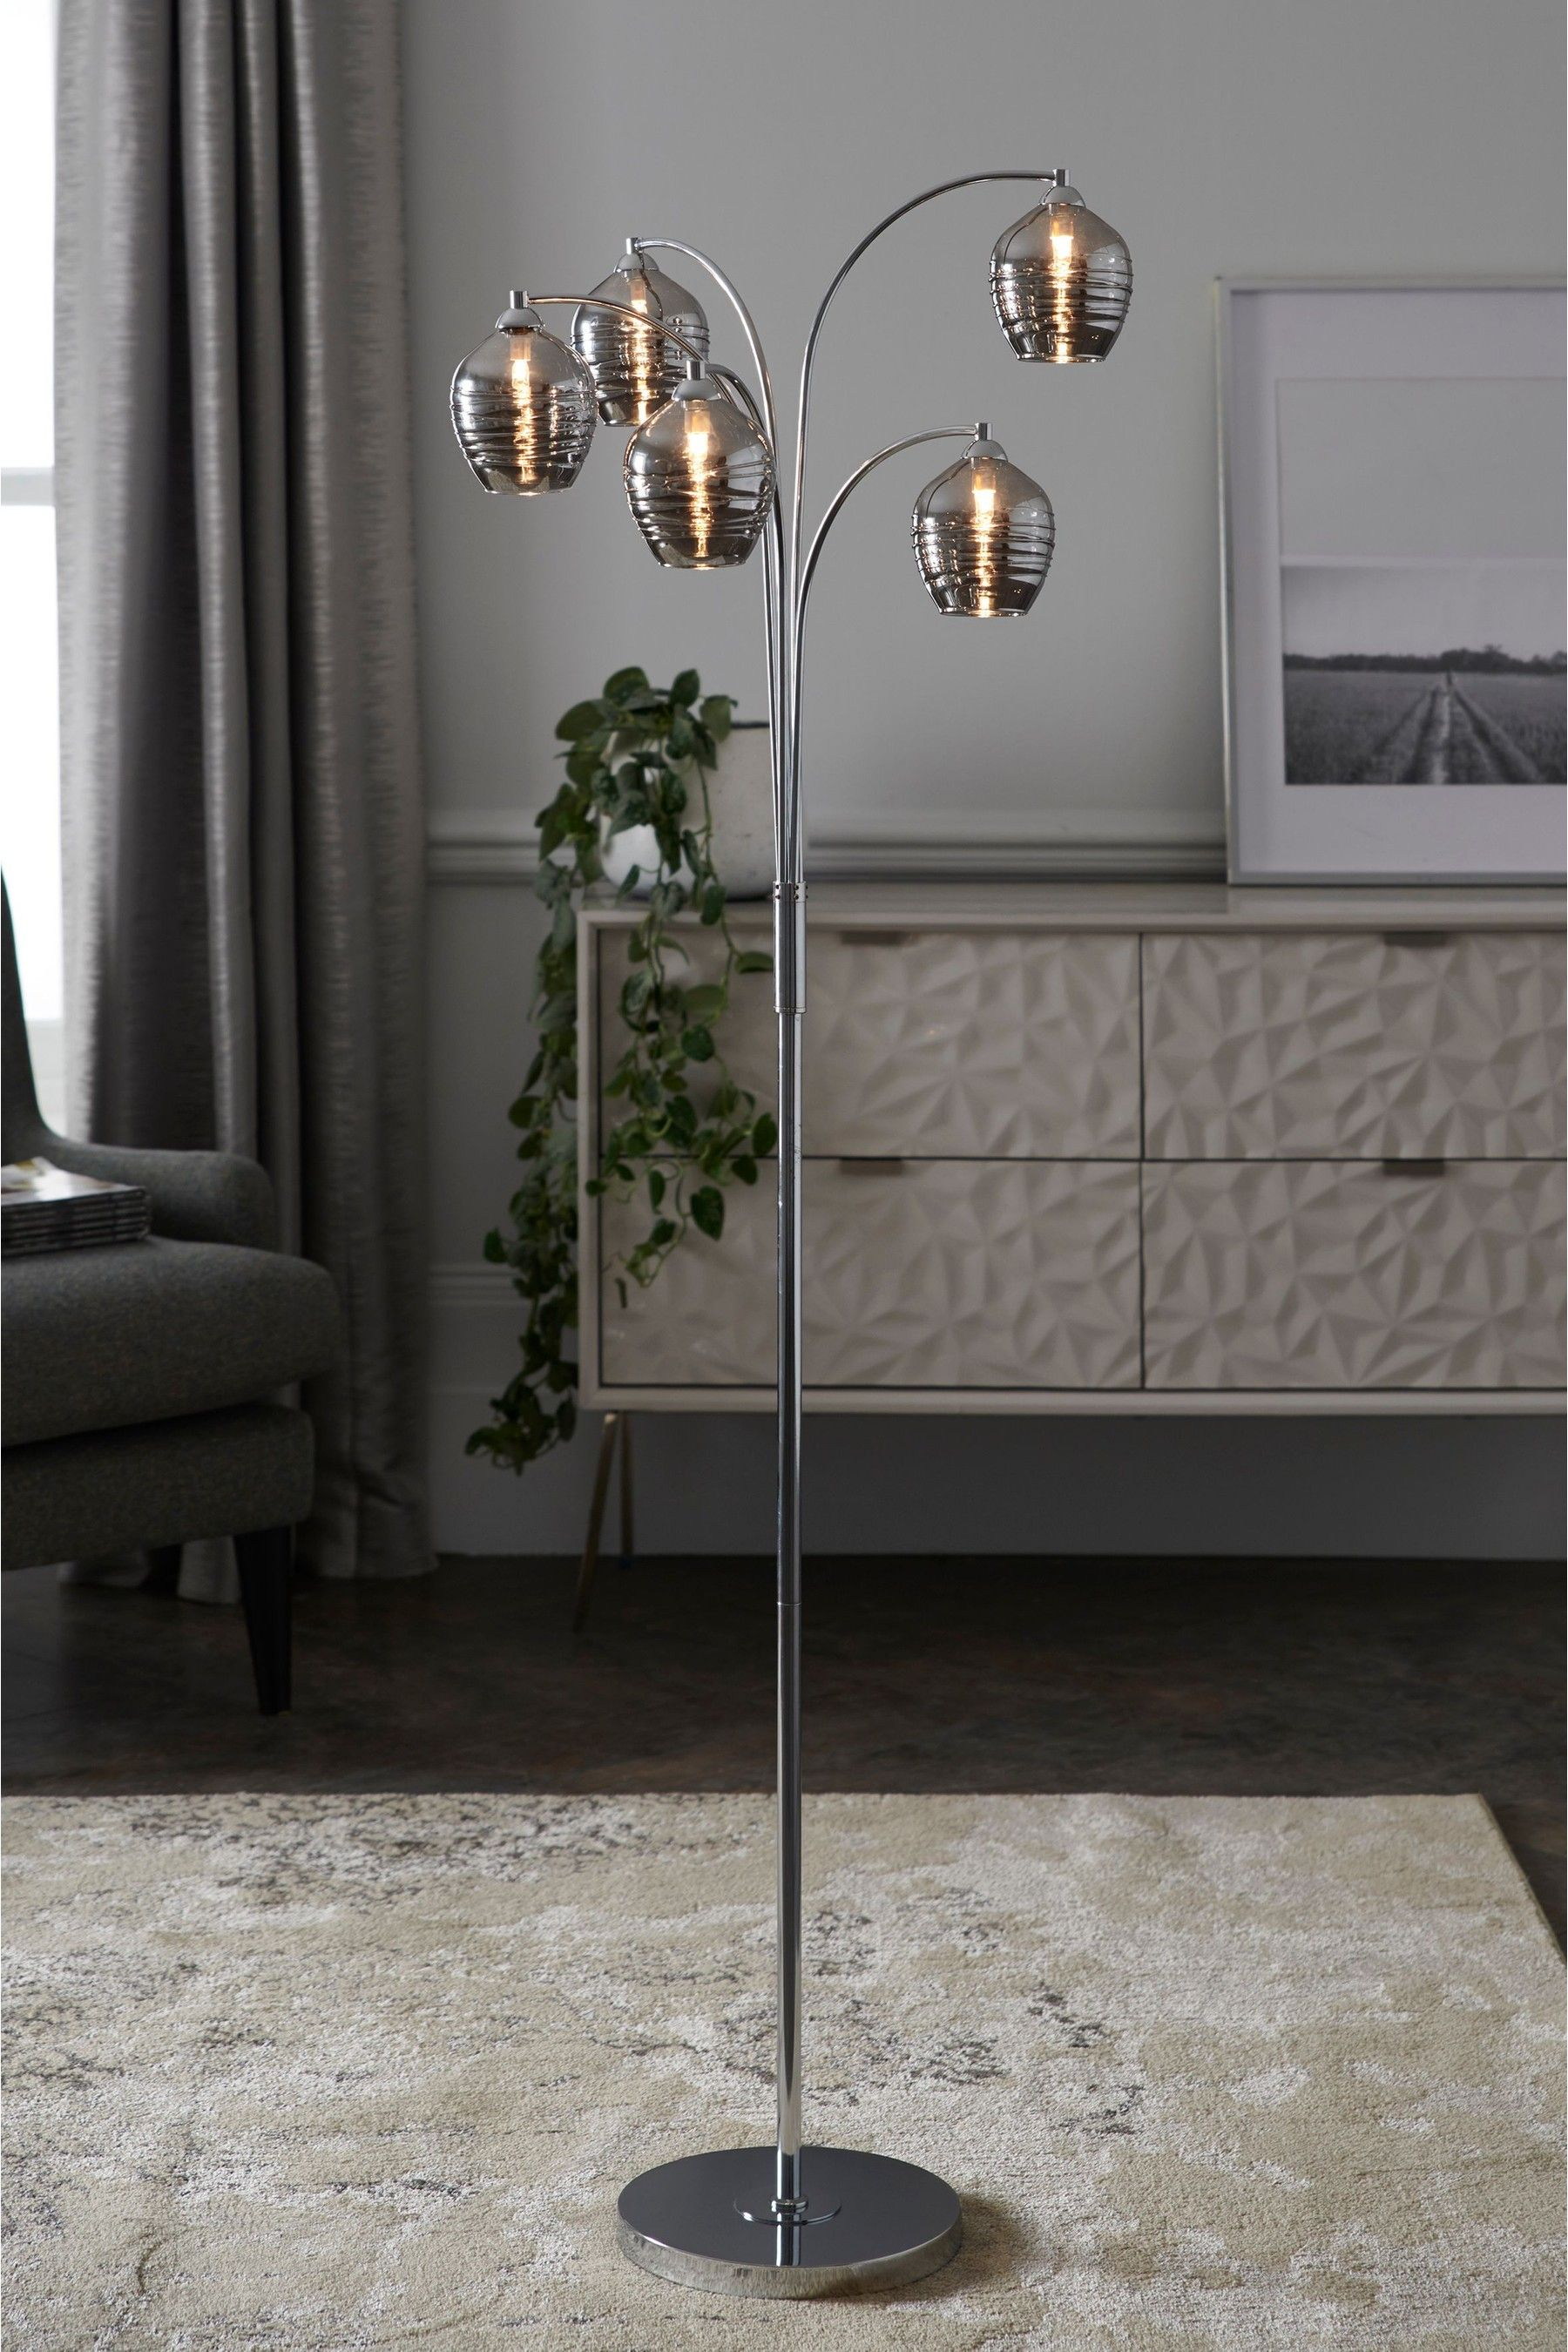 Buy Drizzle Floor Lamp from the Next UK